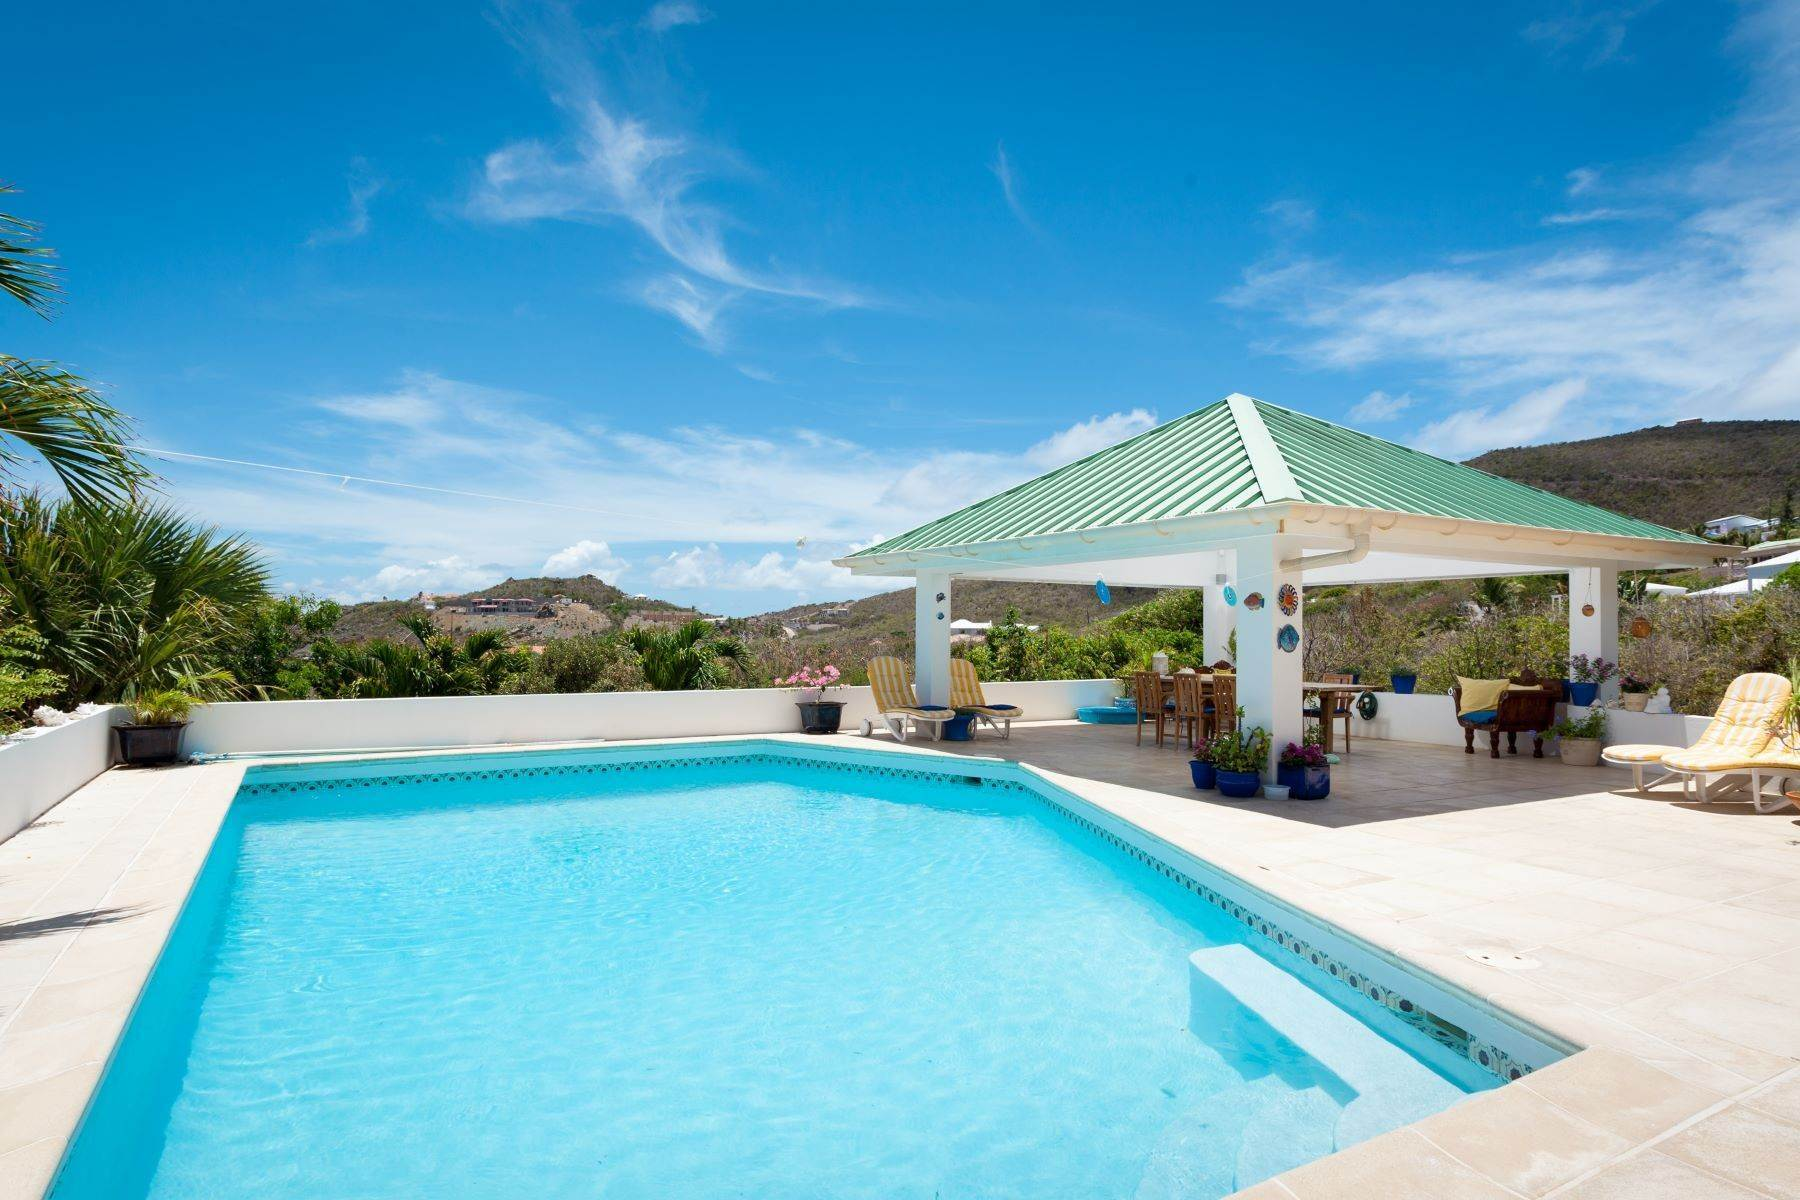 Single Family Homes for Sale at Villa Paradise Guana Bay, St. Maarten